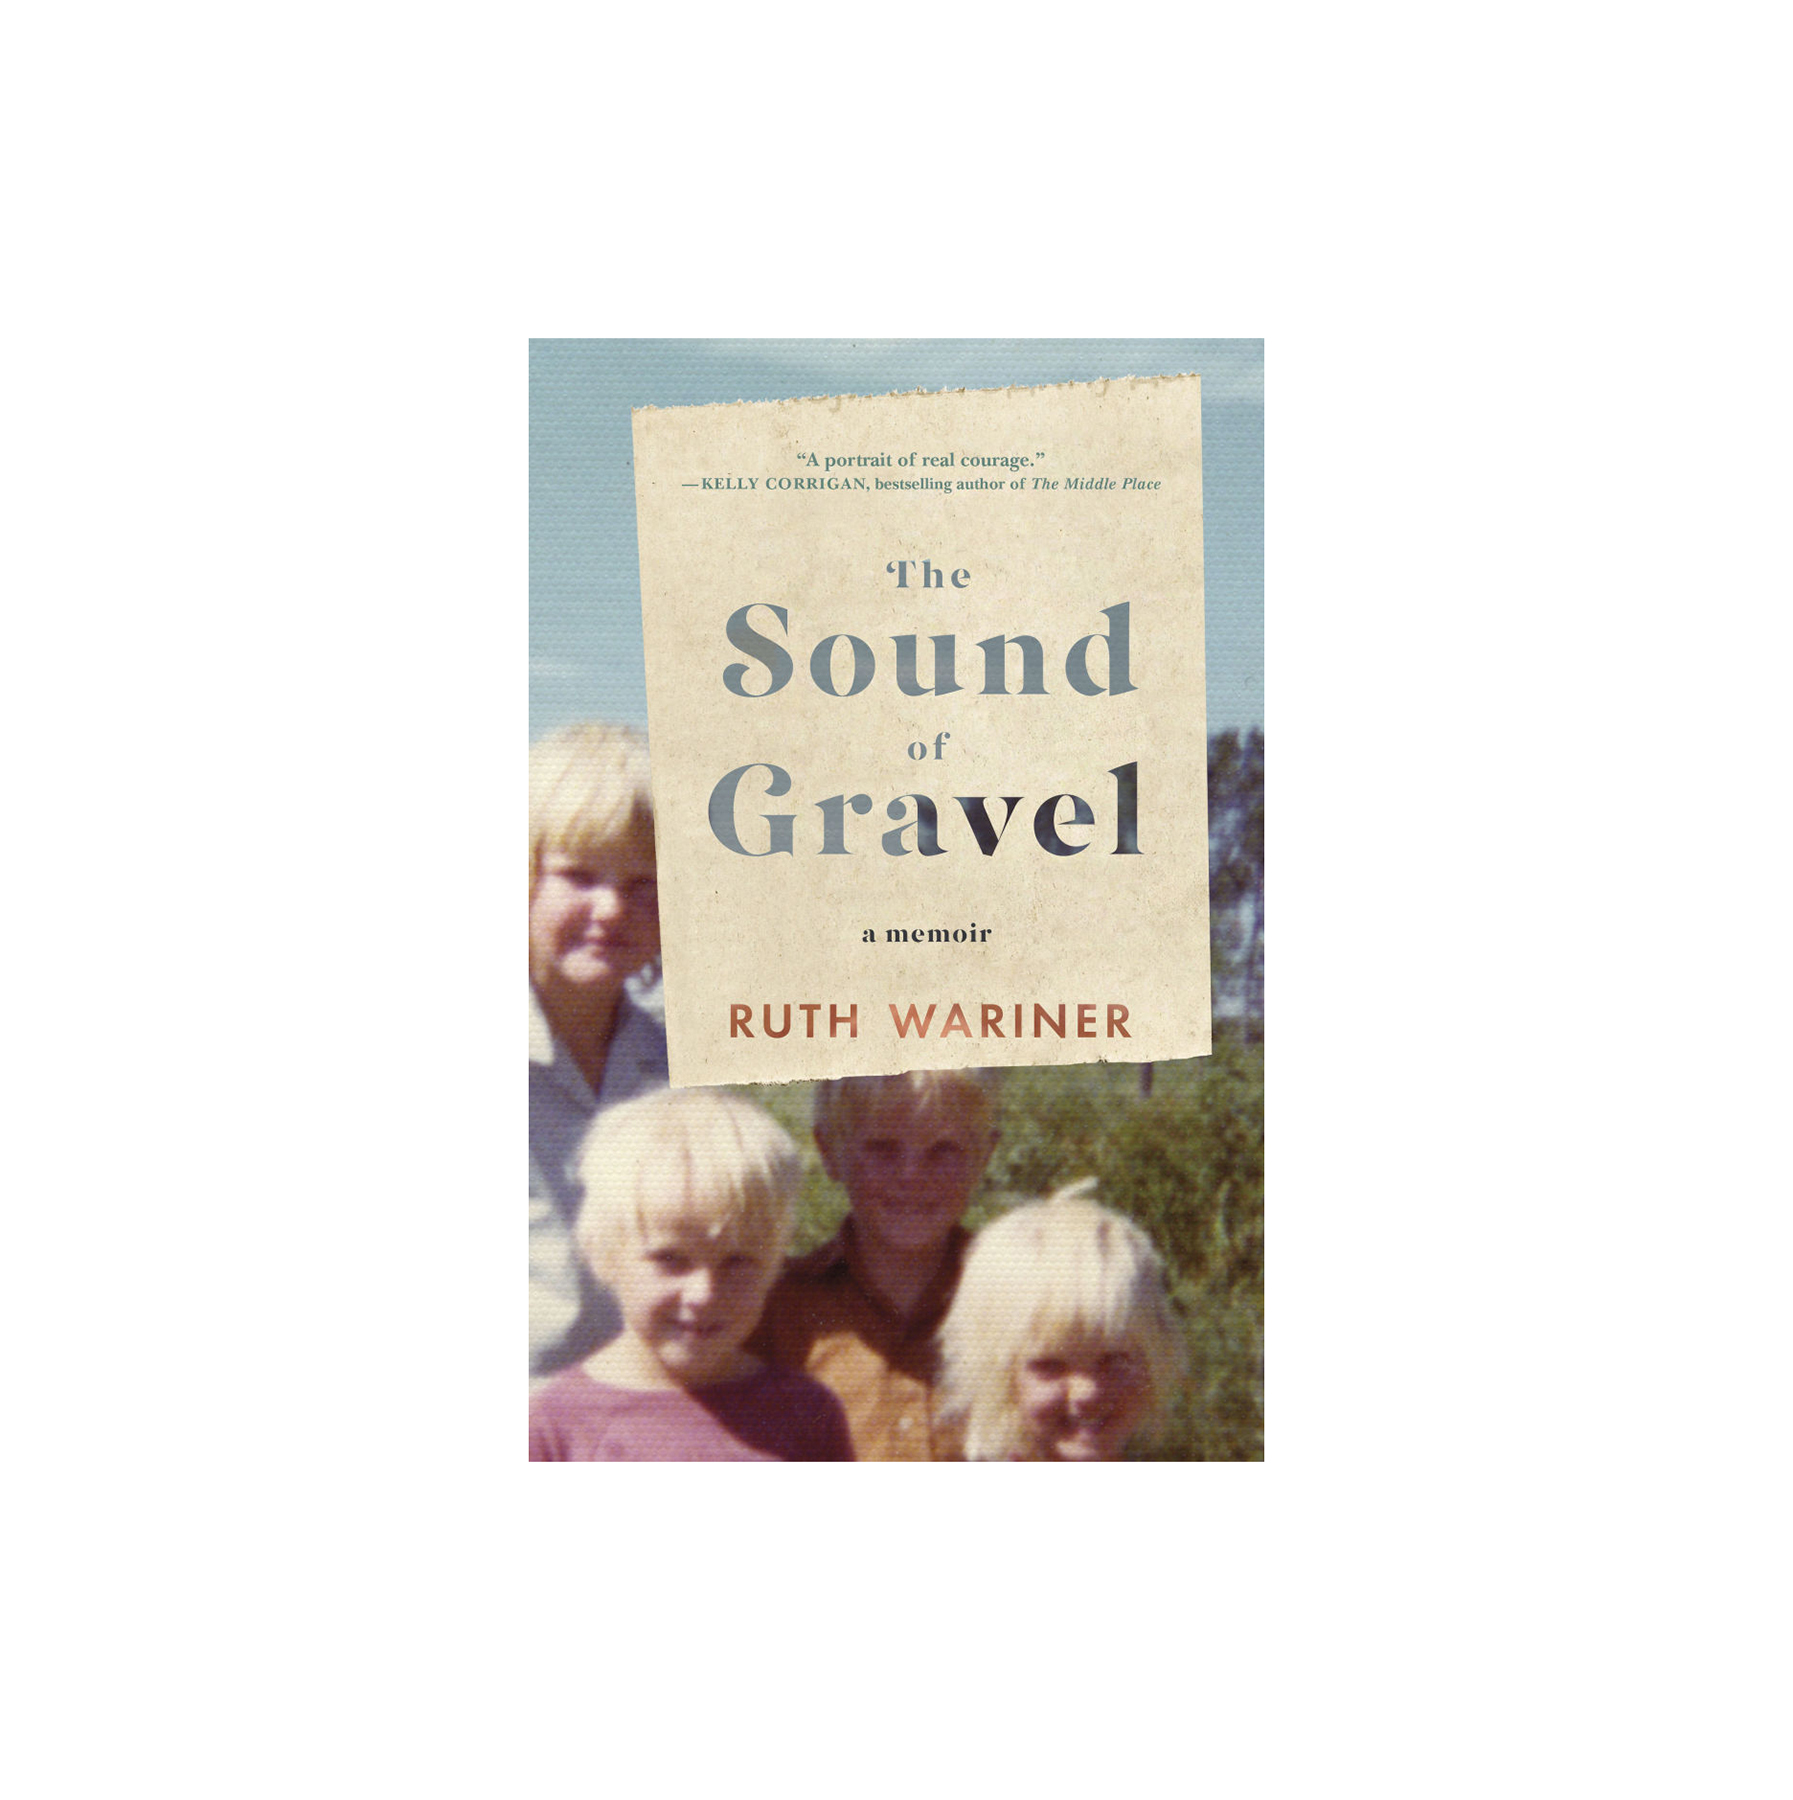 The Sound of Gravel, by Ruth Wariner